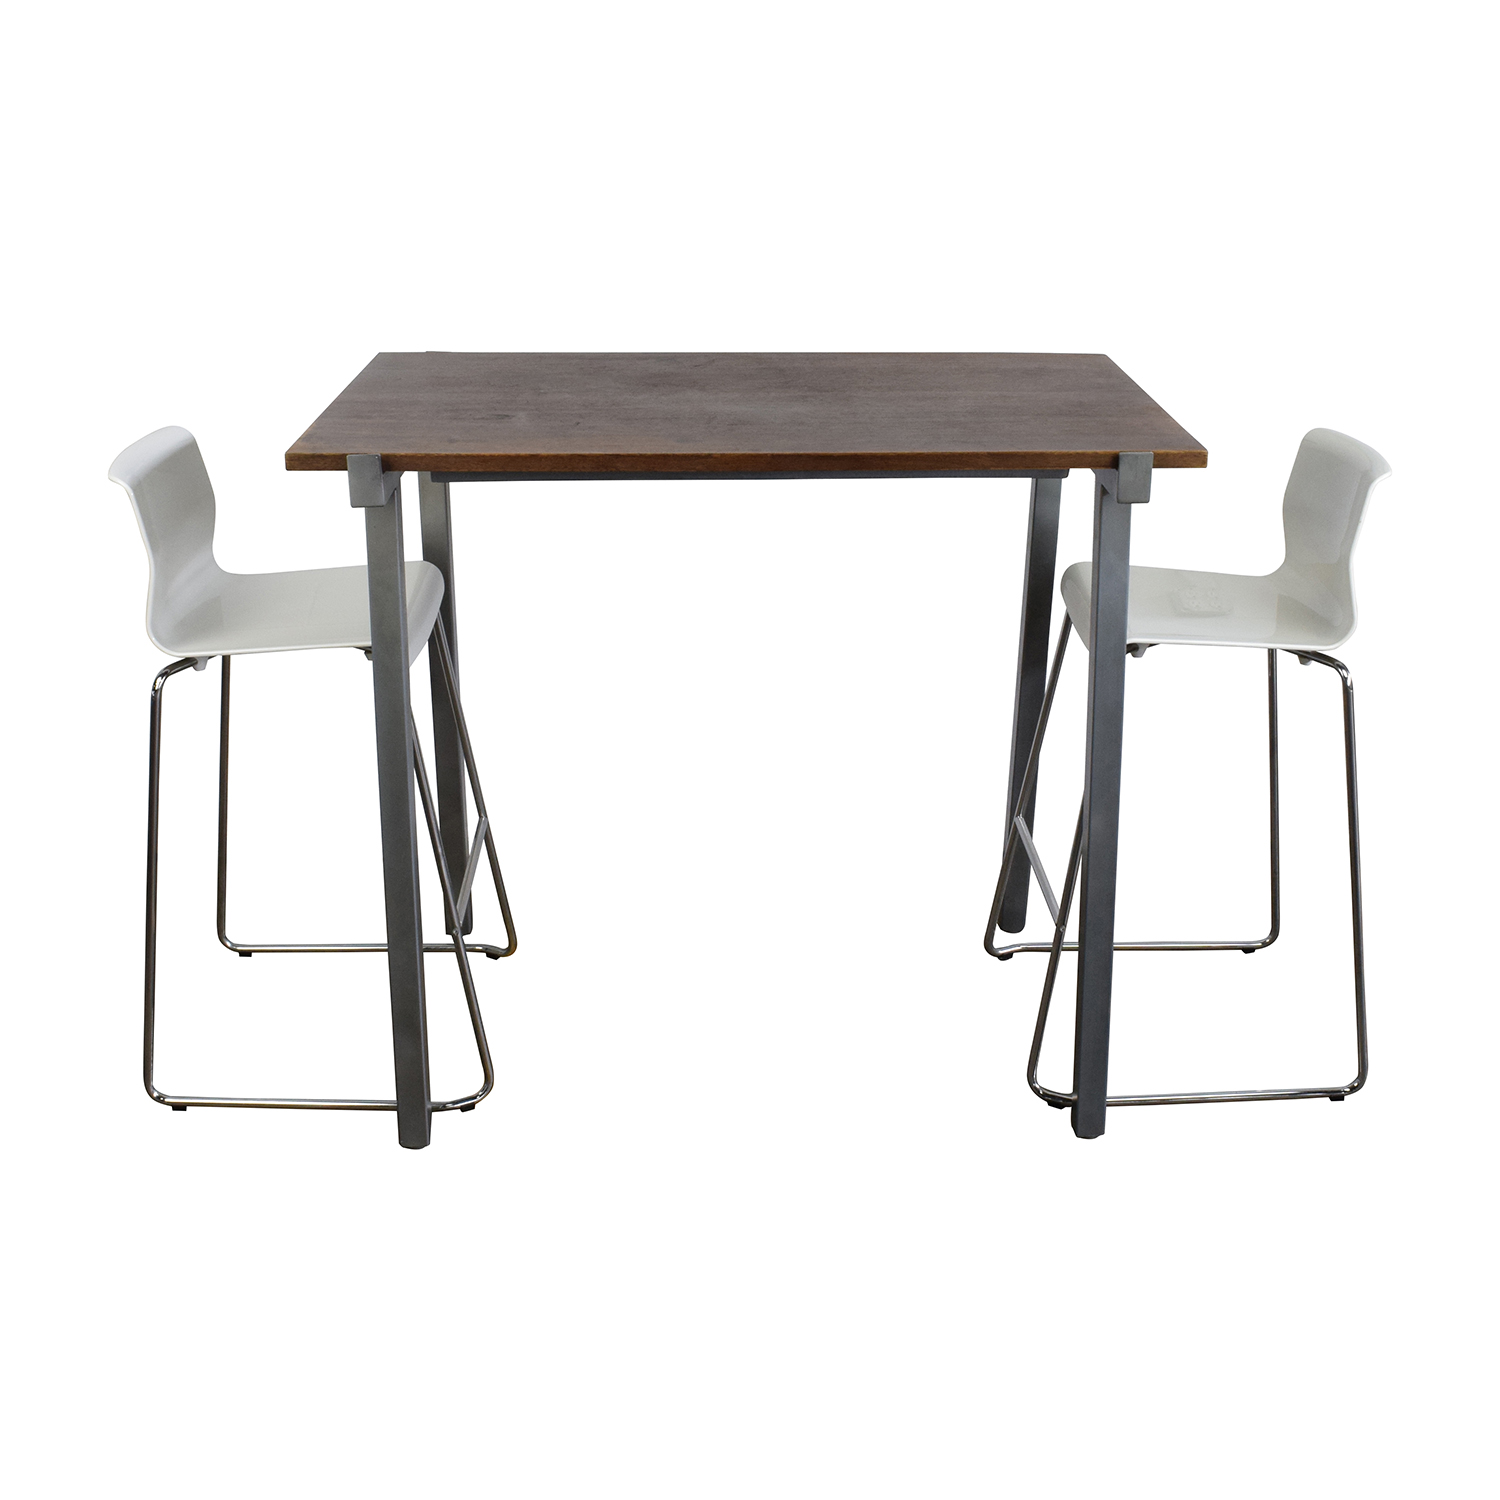 CB2 High Dining Table and Chairs Set / Dinner Tables